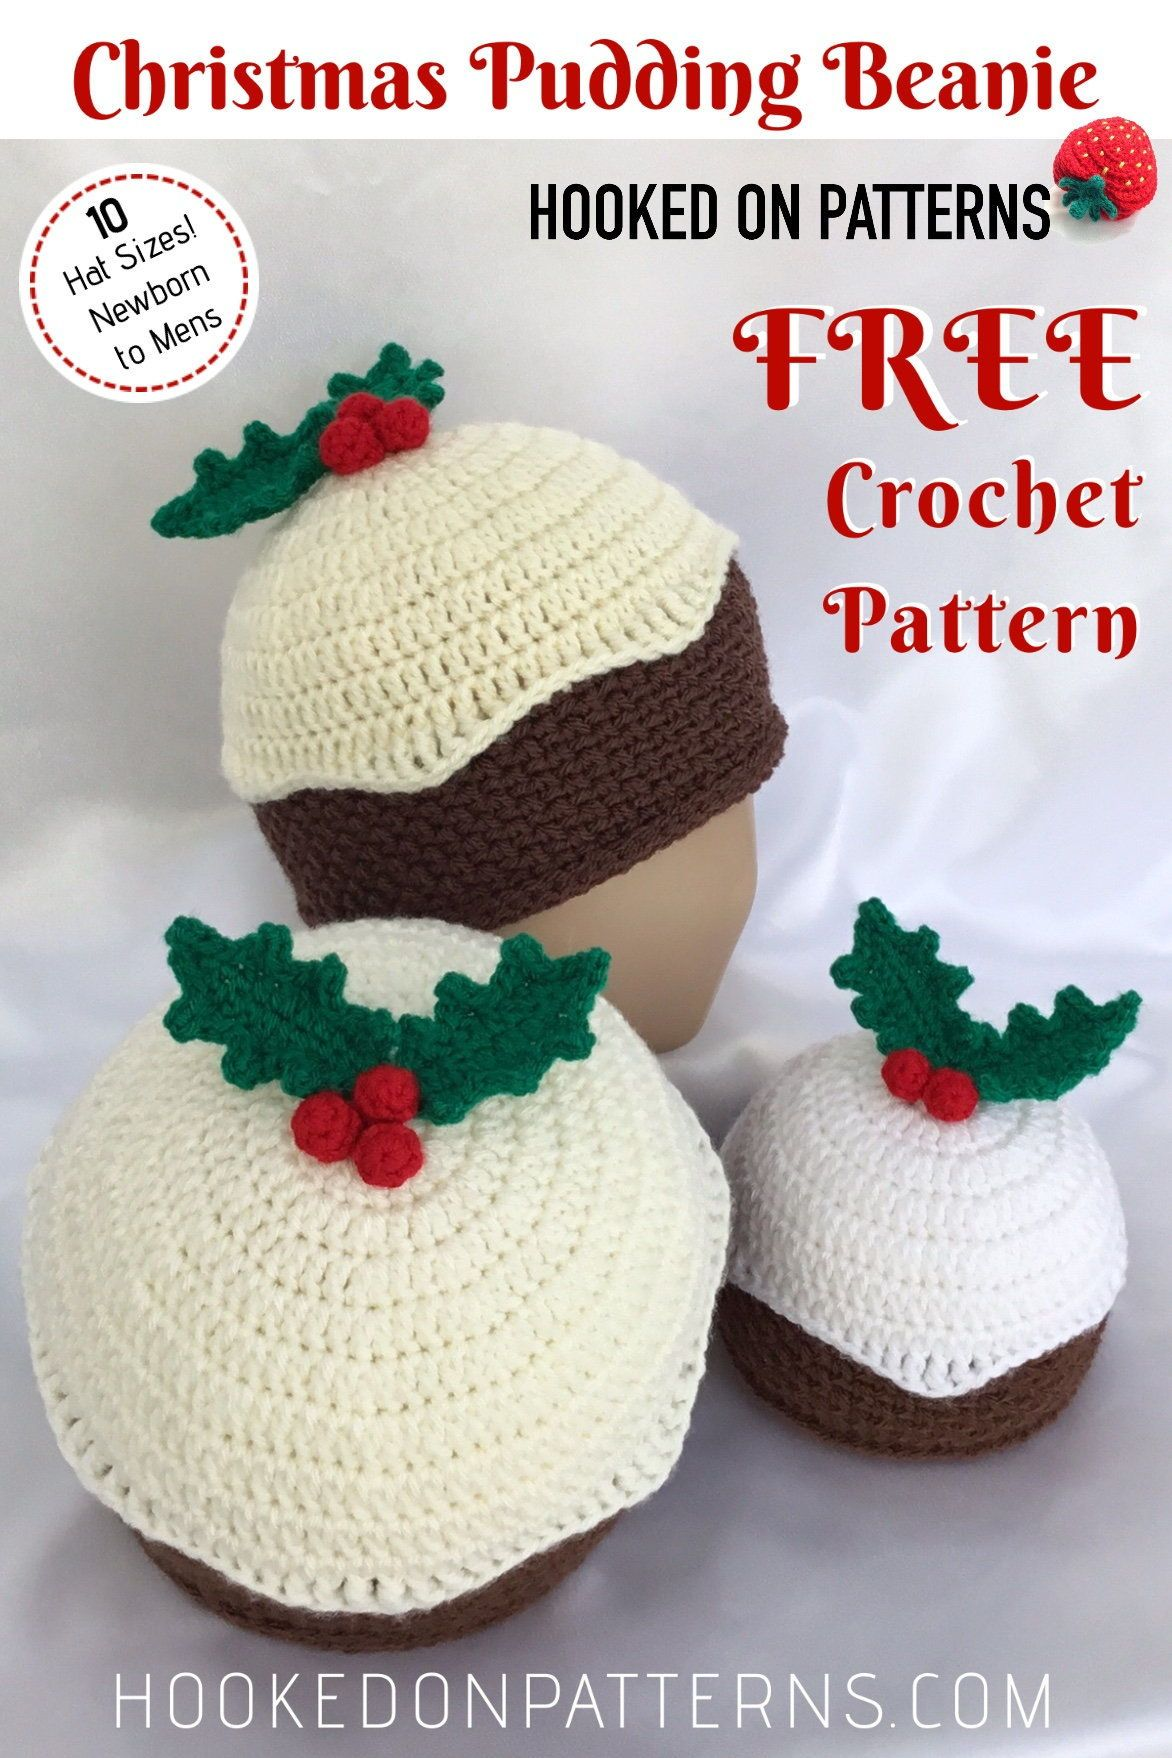 cc257e253ba035 Free Crochet Christmas Pudding Beanie Hat Pattern from Hooked On Patterns.  A fun novelty Xmas